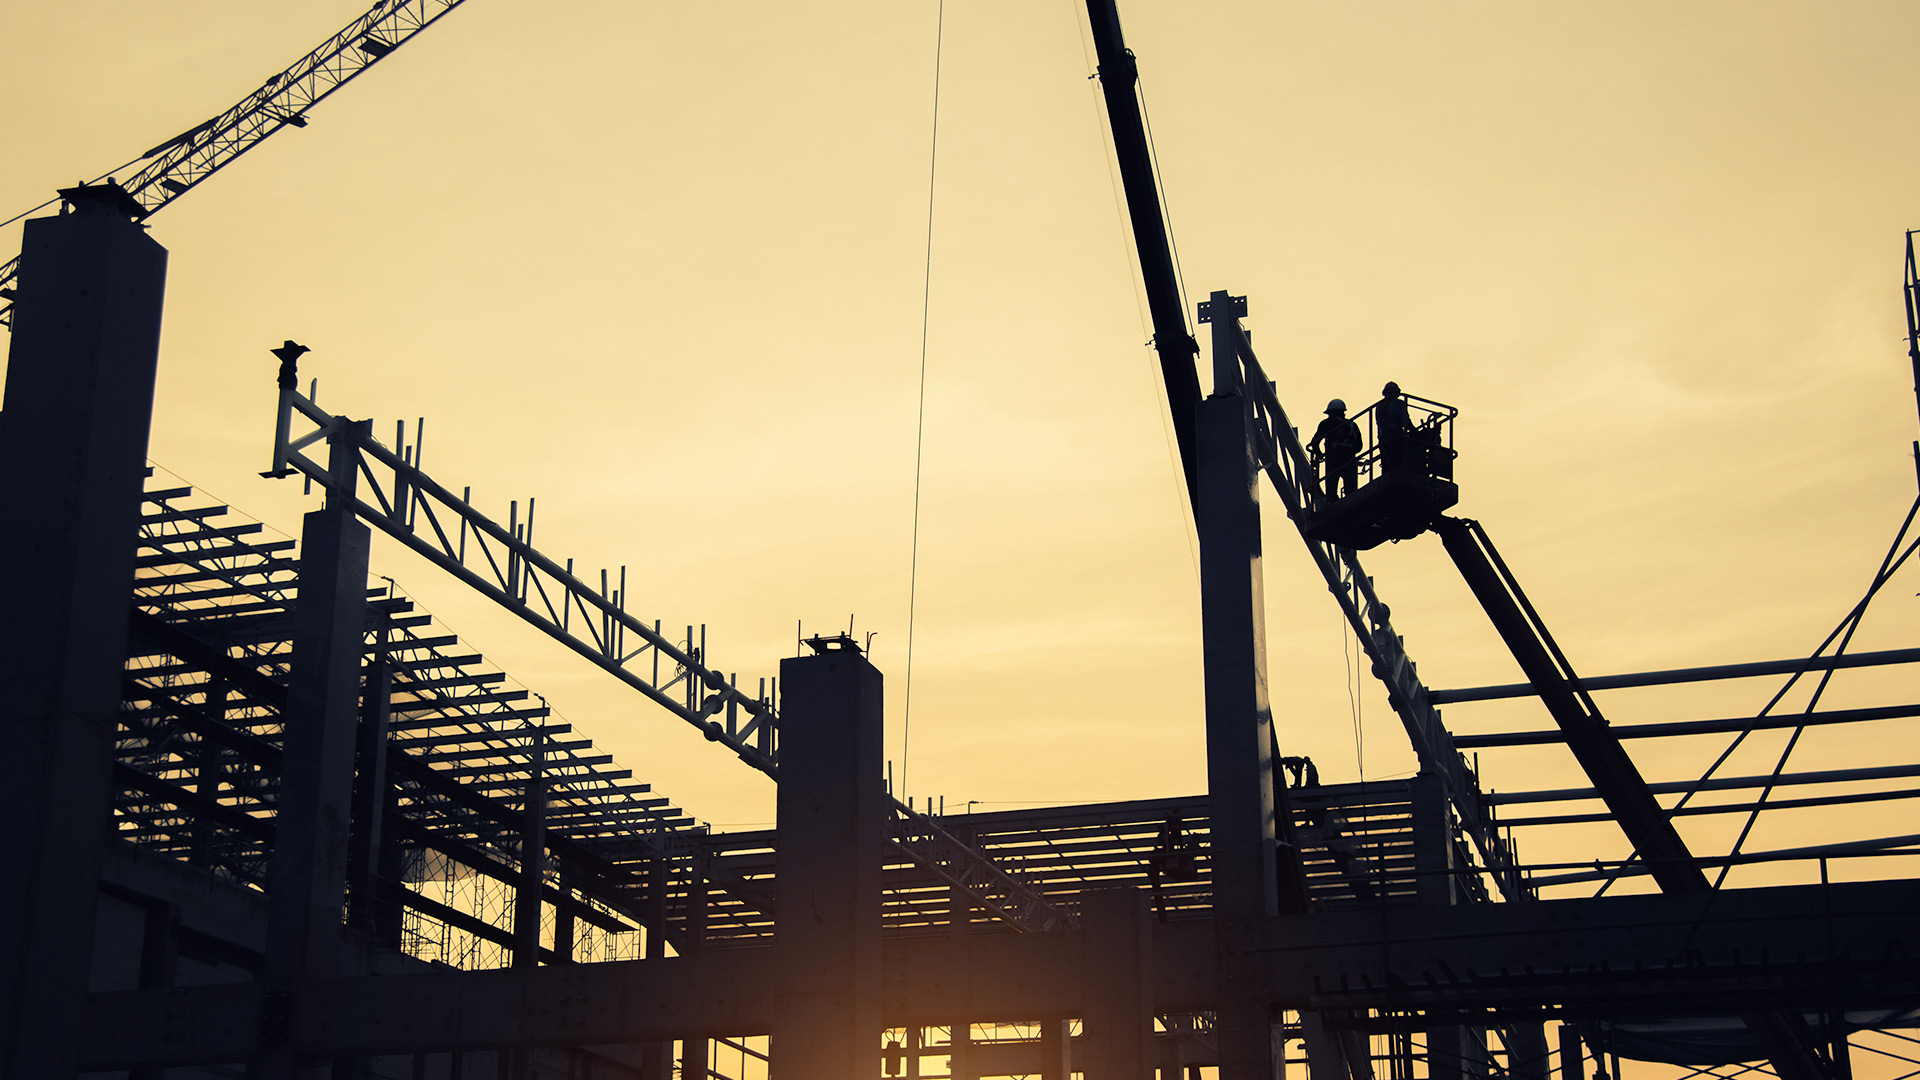 Silhouette of a crane and scaffolding on a construction site